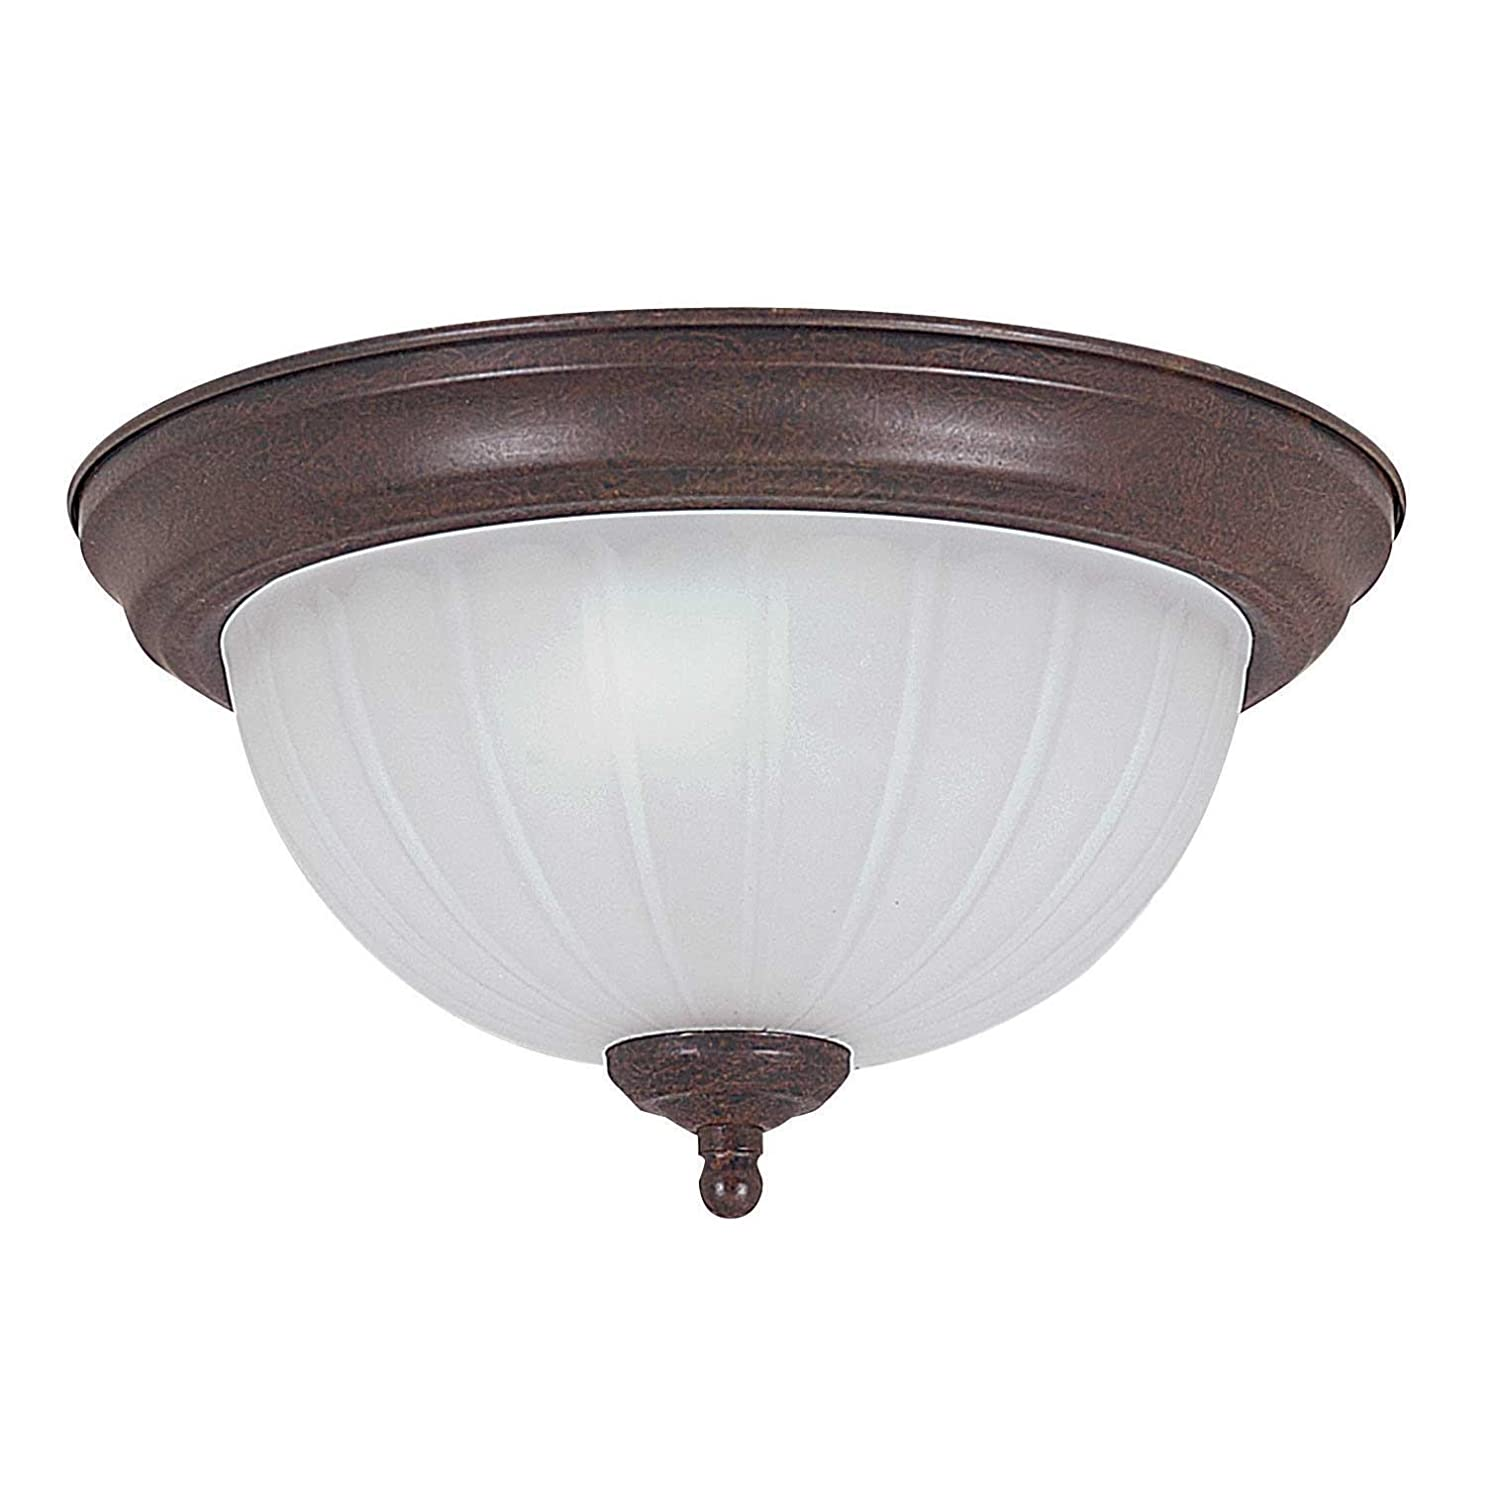 Rubbed Bronze Finish Sunset Lighting F7102-62 Flush Mount with Frosted Melon Glass